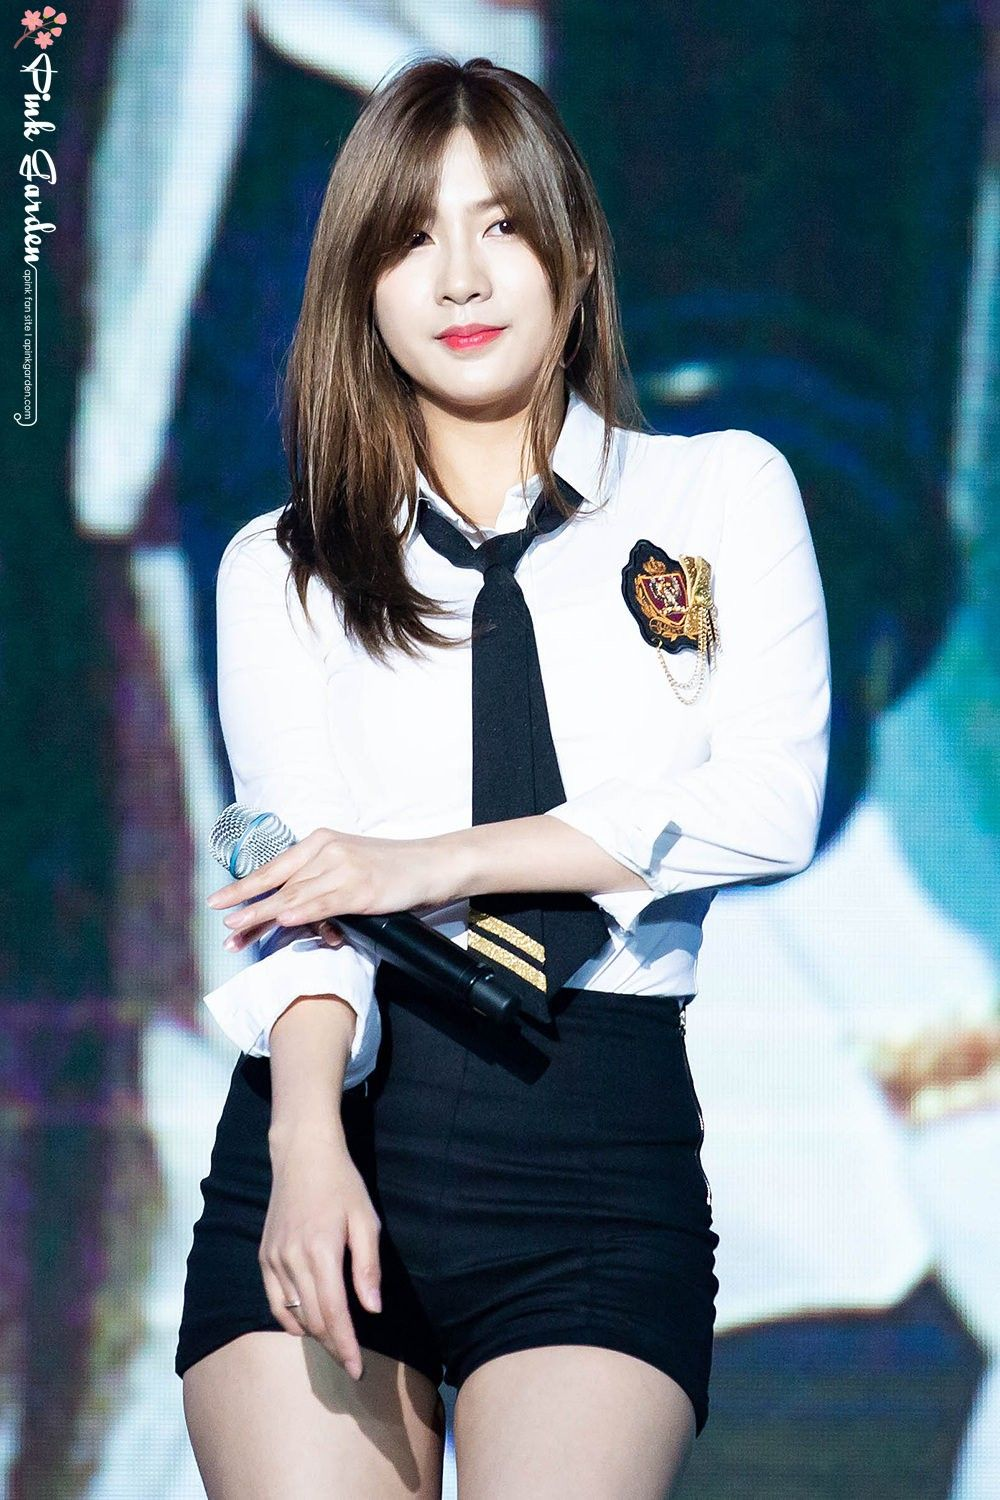 Oh Ha Young Apink 181010 Kpop